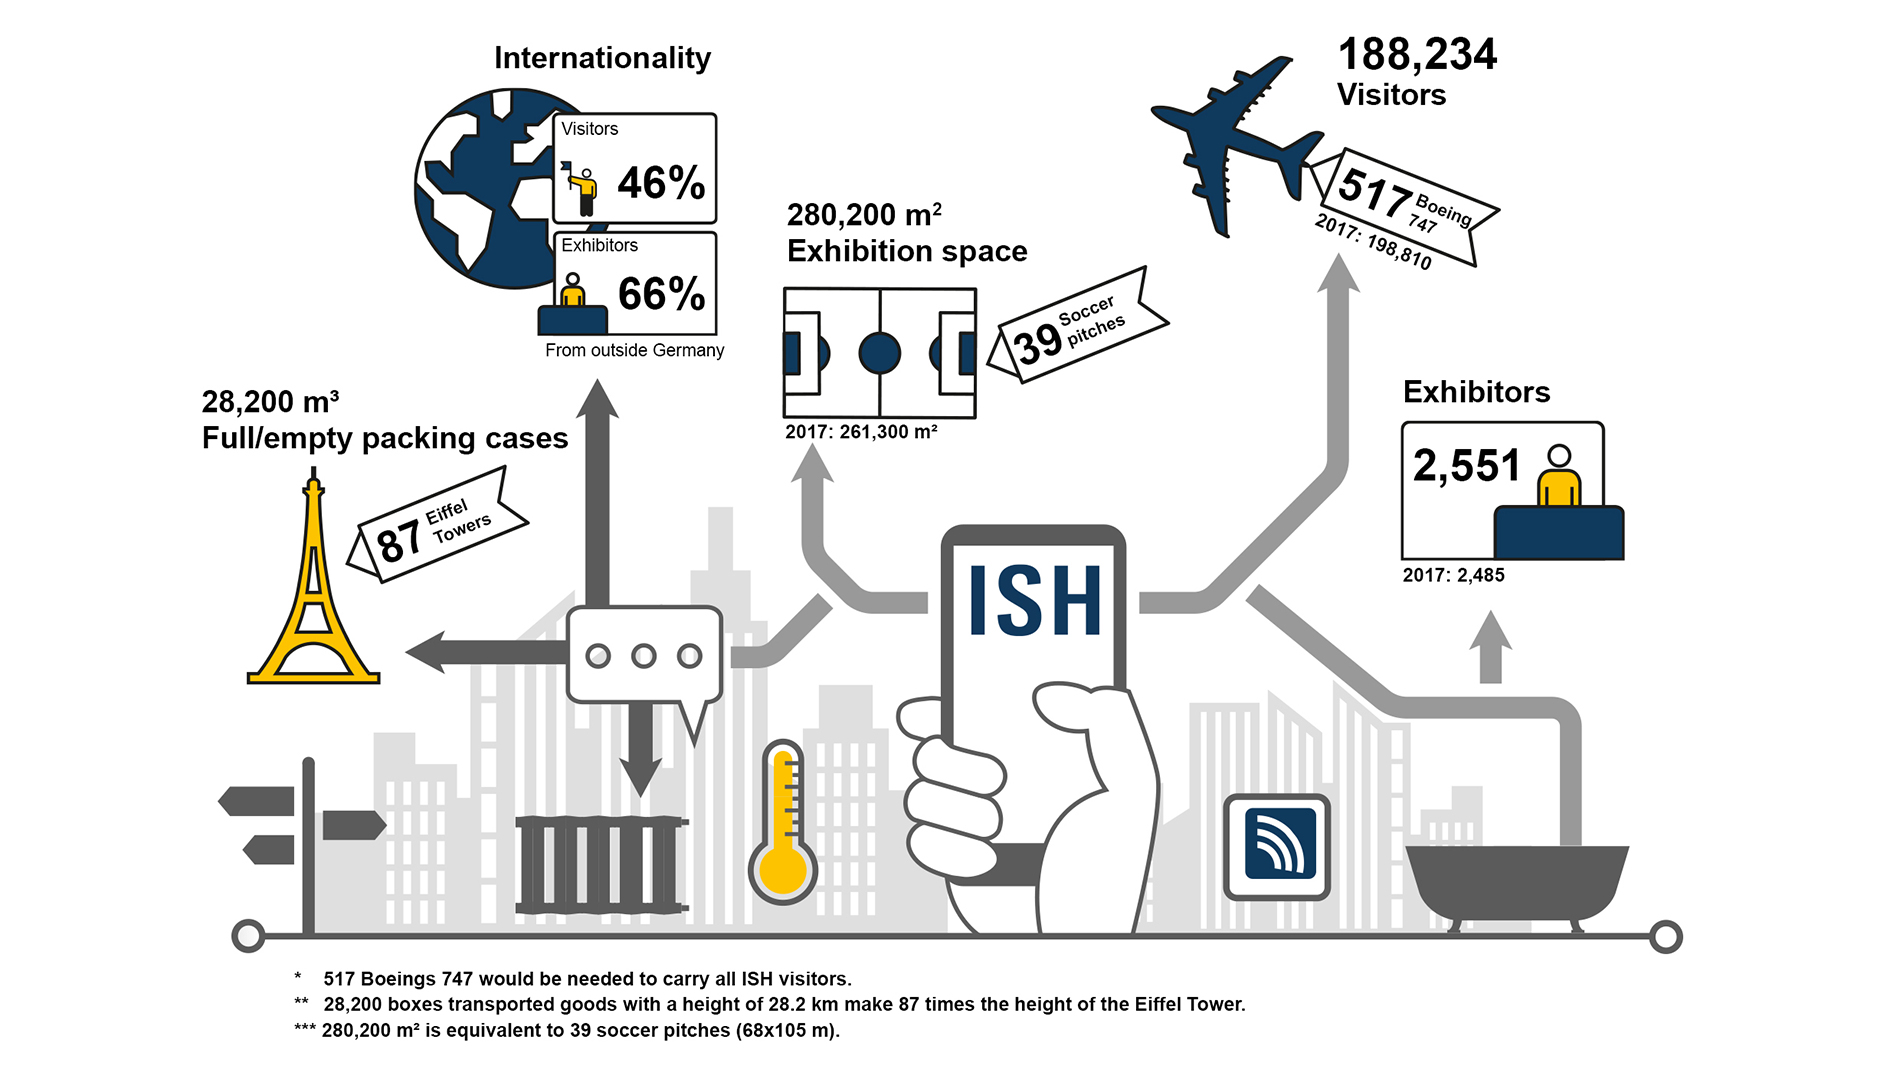 Ish Proportion Of International Visitors Climbs To